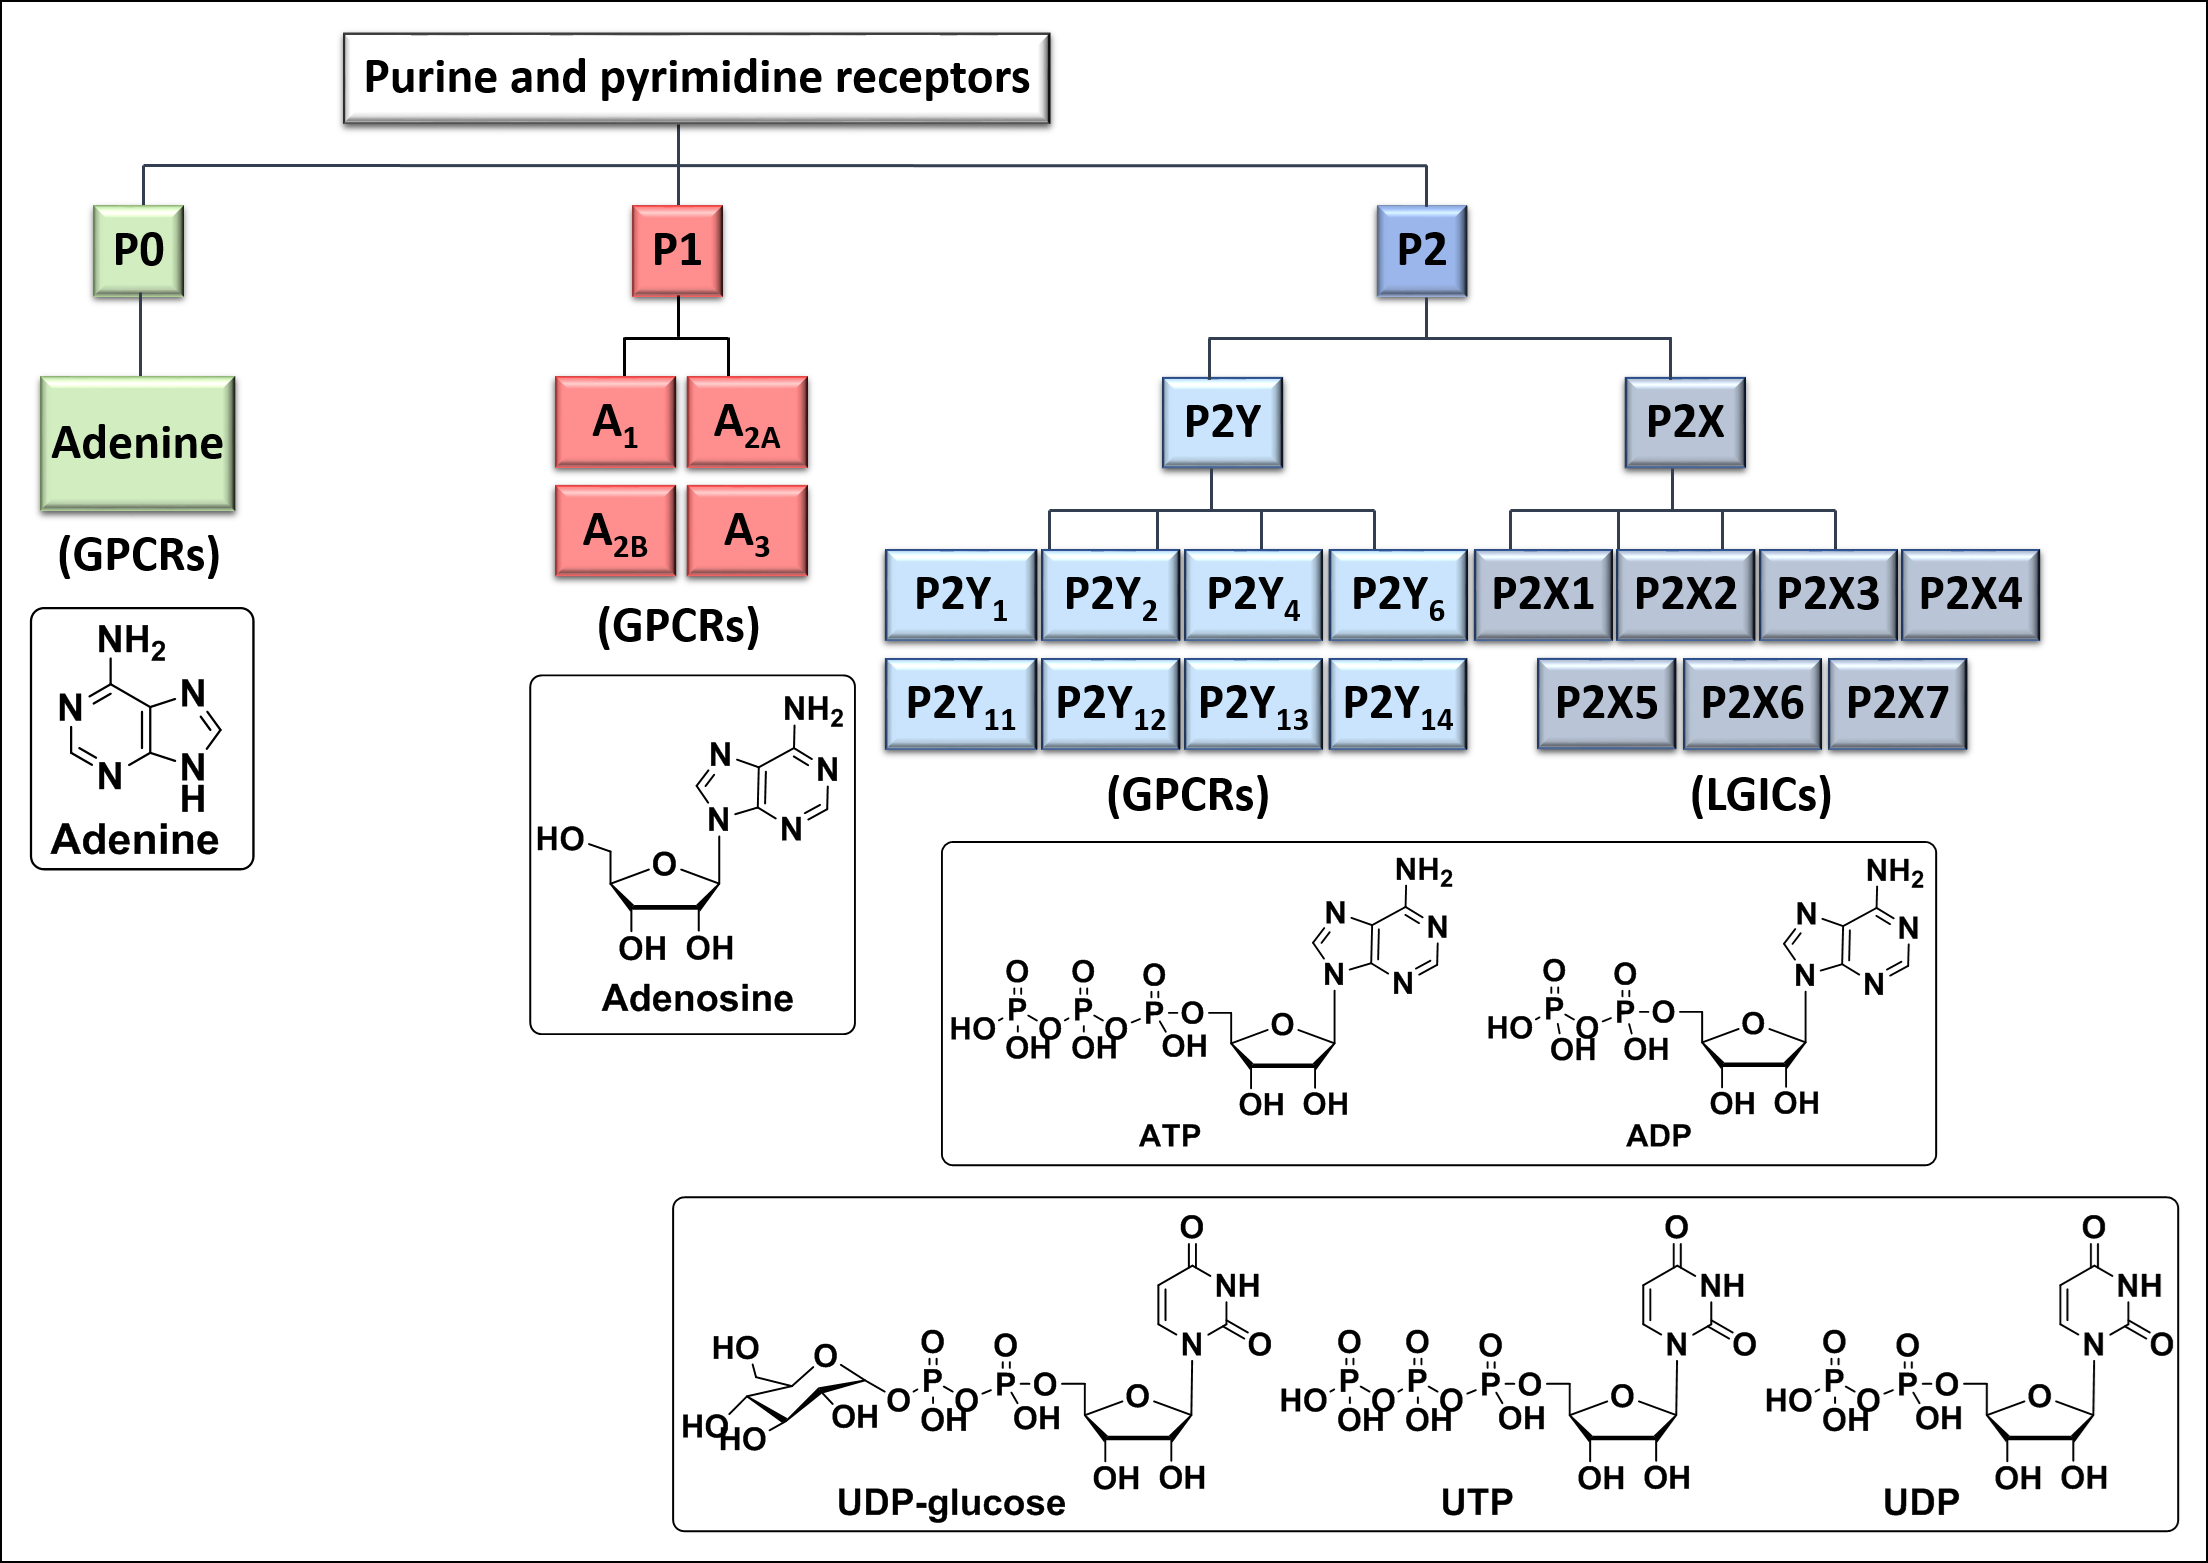 purine and pyrimidine receptors-5.png